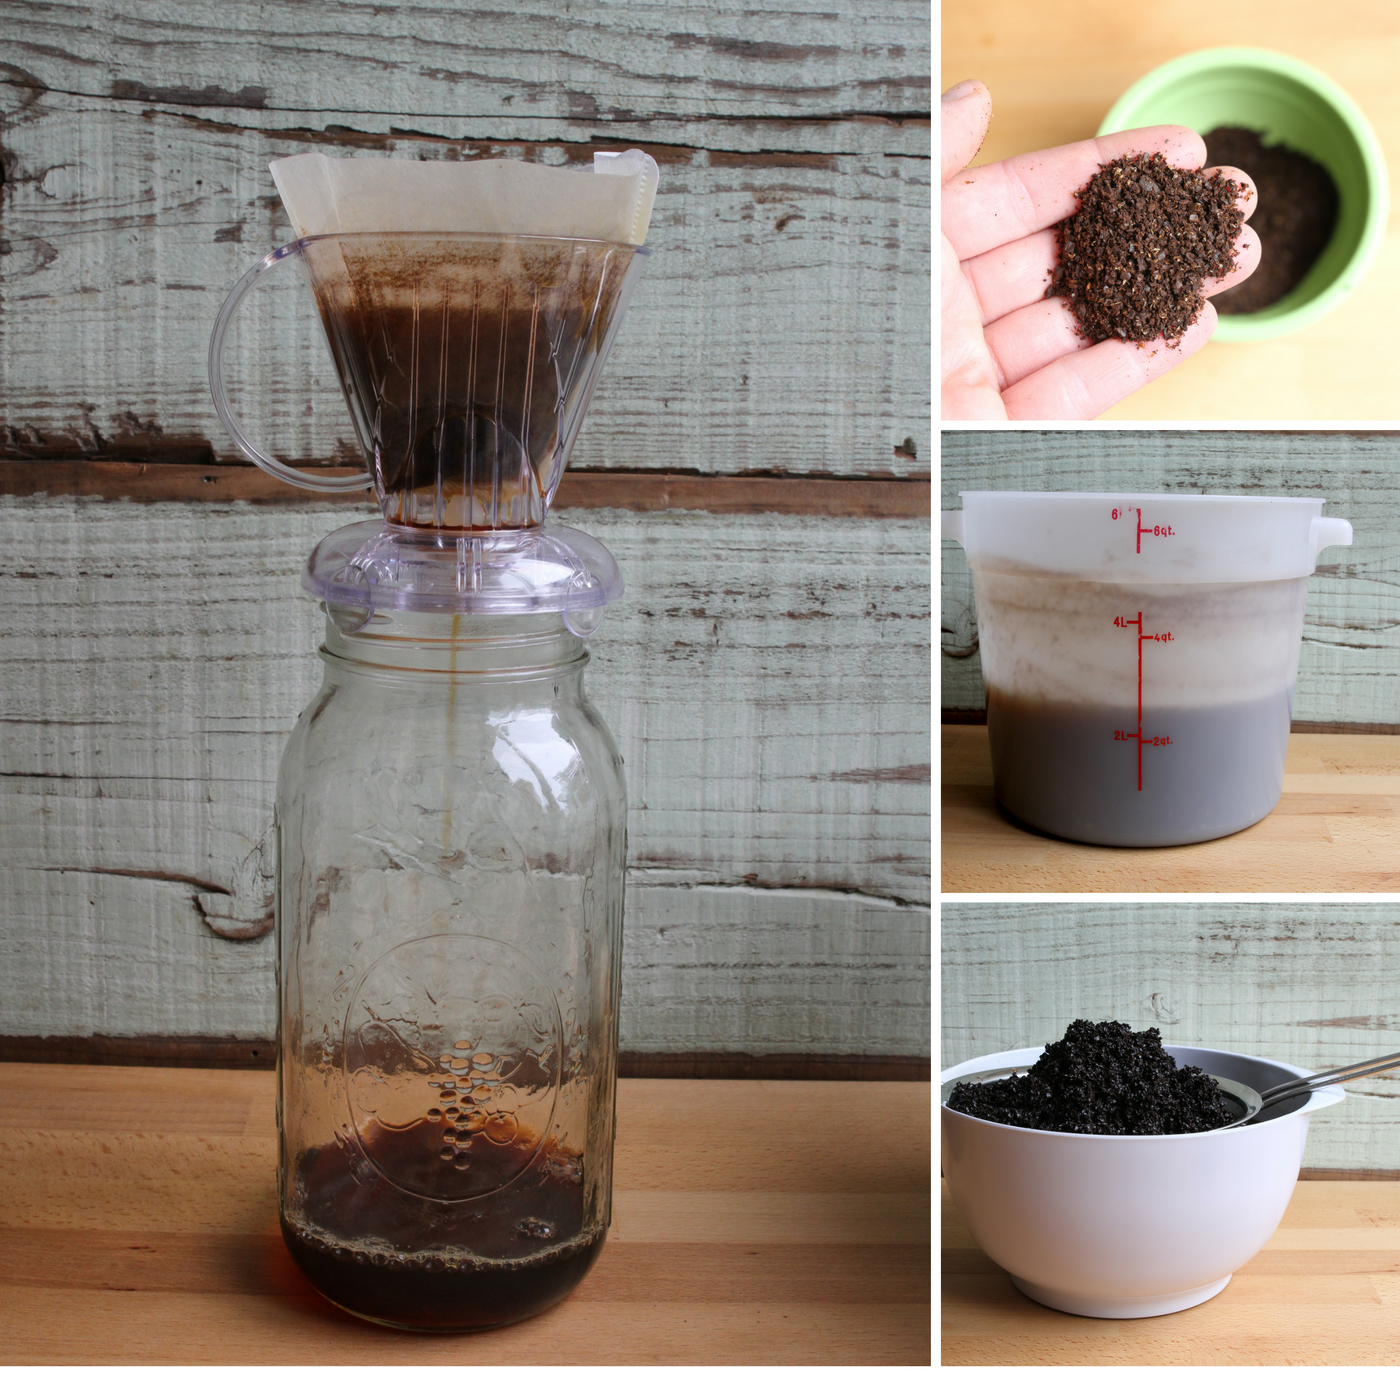 How To: Make Cold Brew + A Butter Mocha Recipe - zenbelly